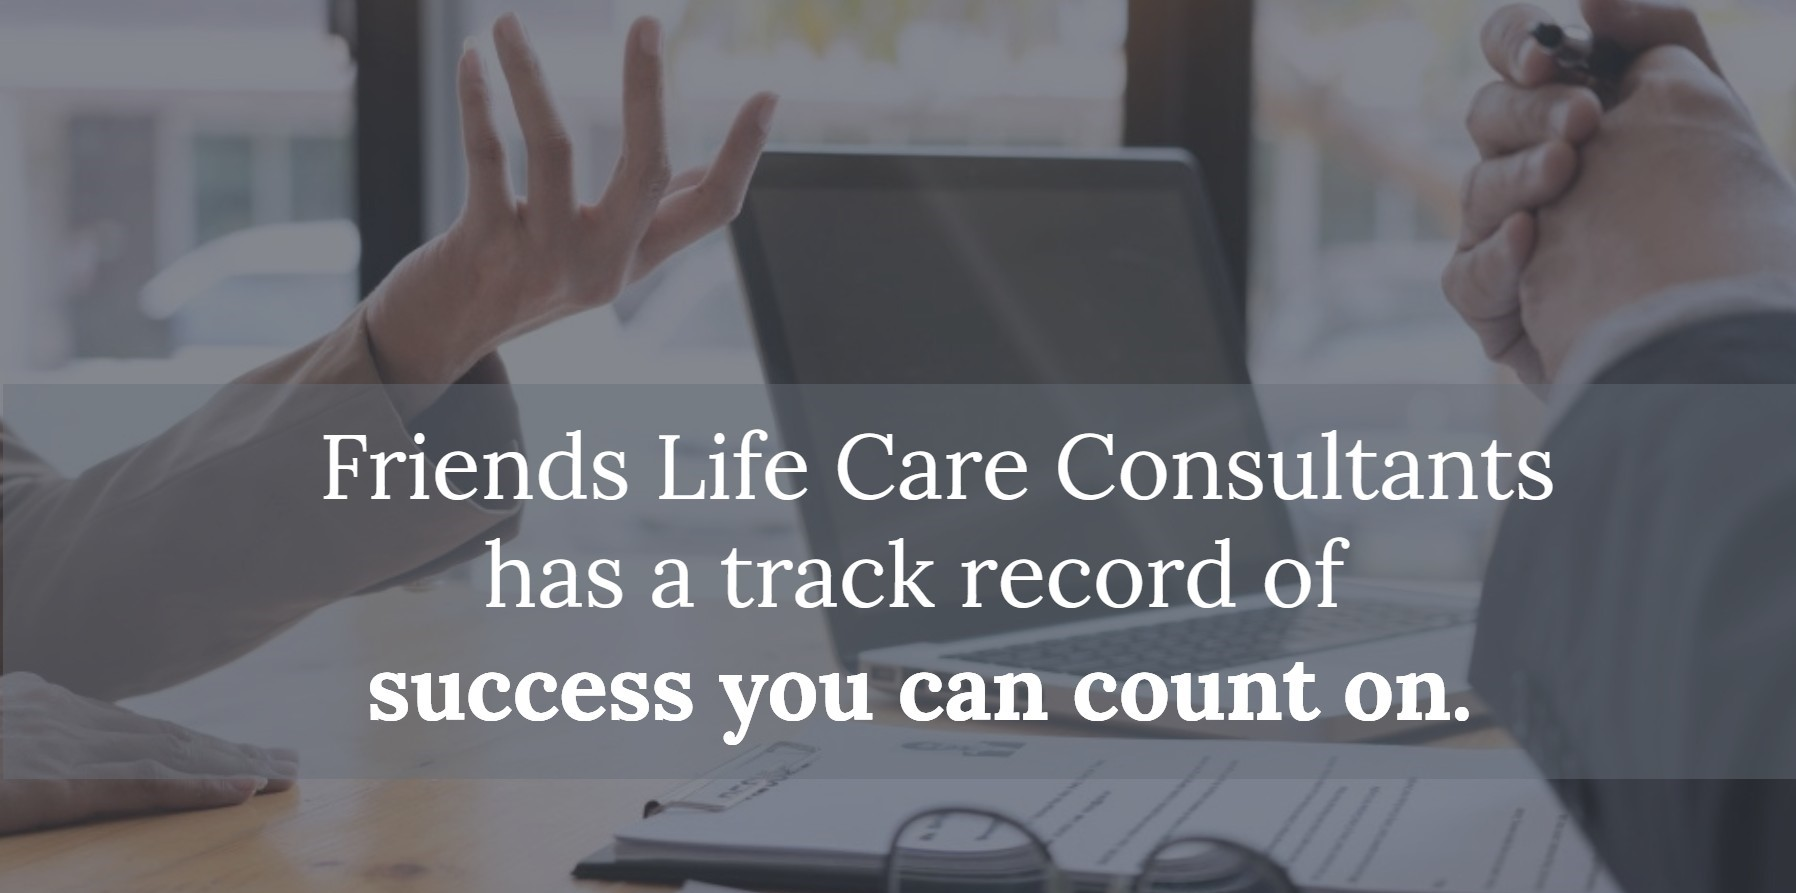 Friends Life Care Consultants has a track record of success you can count on.